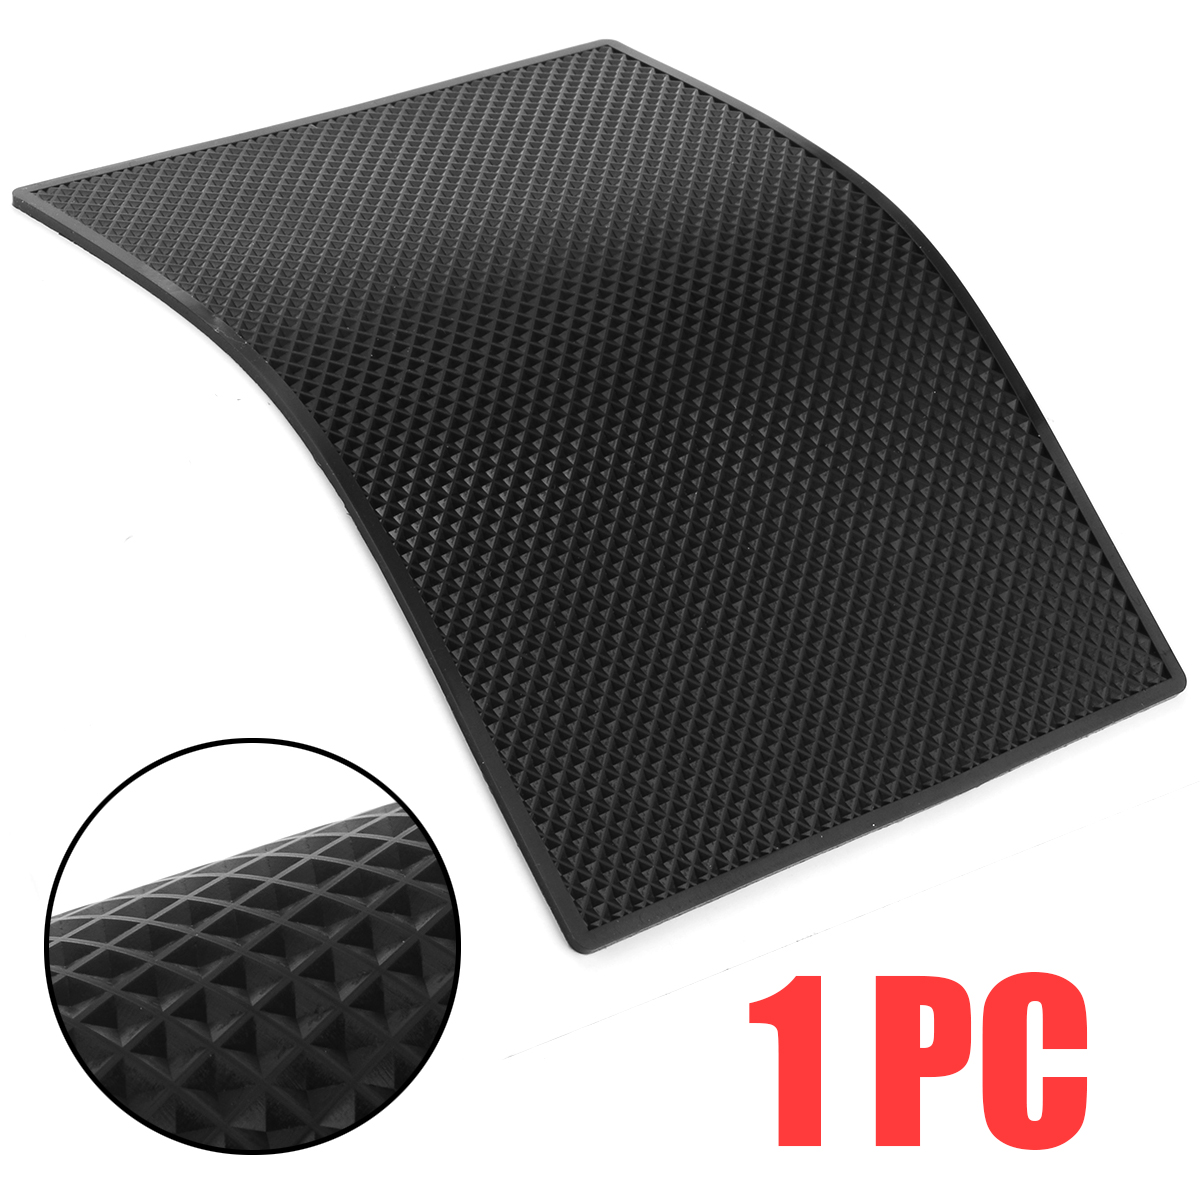 Black PVC Non-slip Smart Phone Mat Holder Reusable Anti-Slip Car SUV Dashboard Sticky Pad Household Table Desk Pad Stand